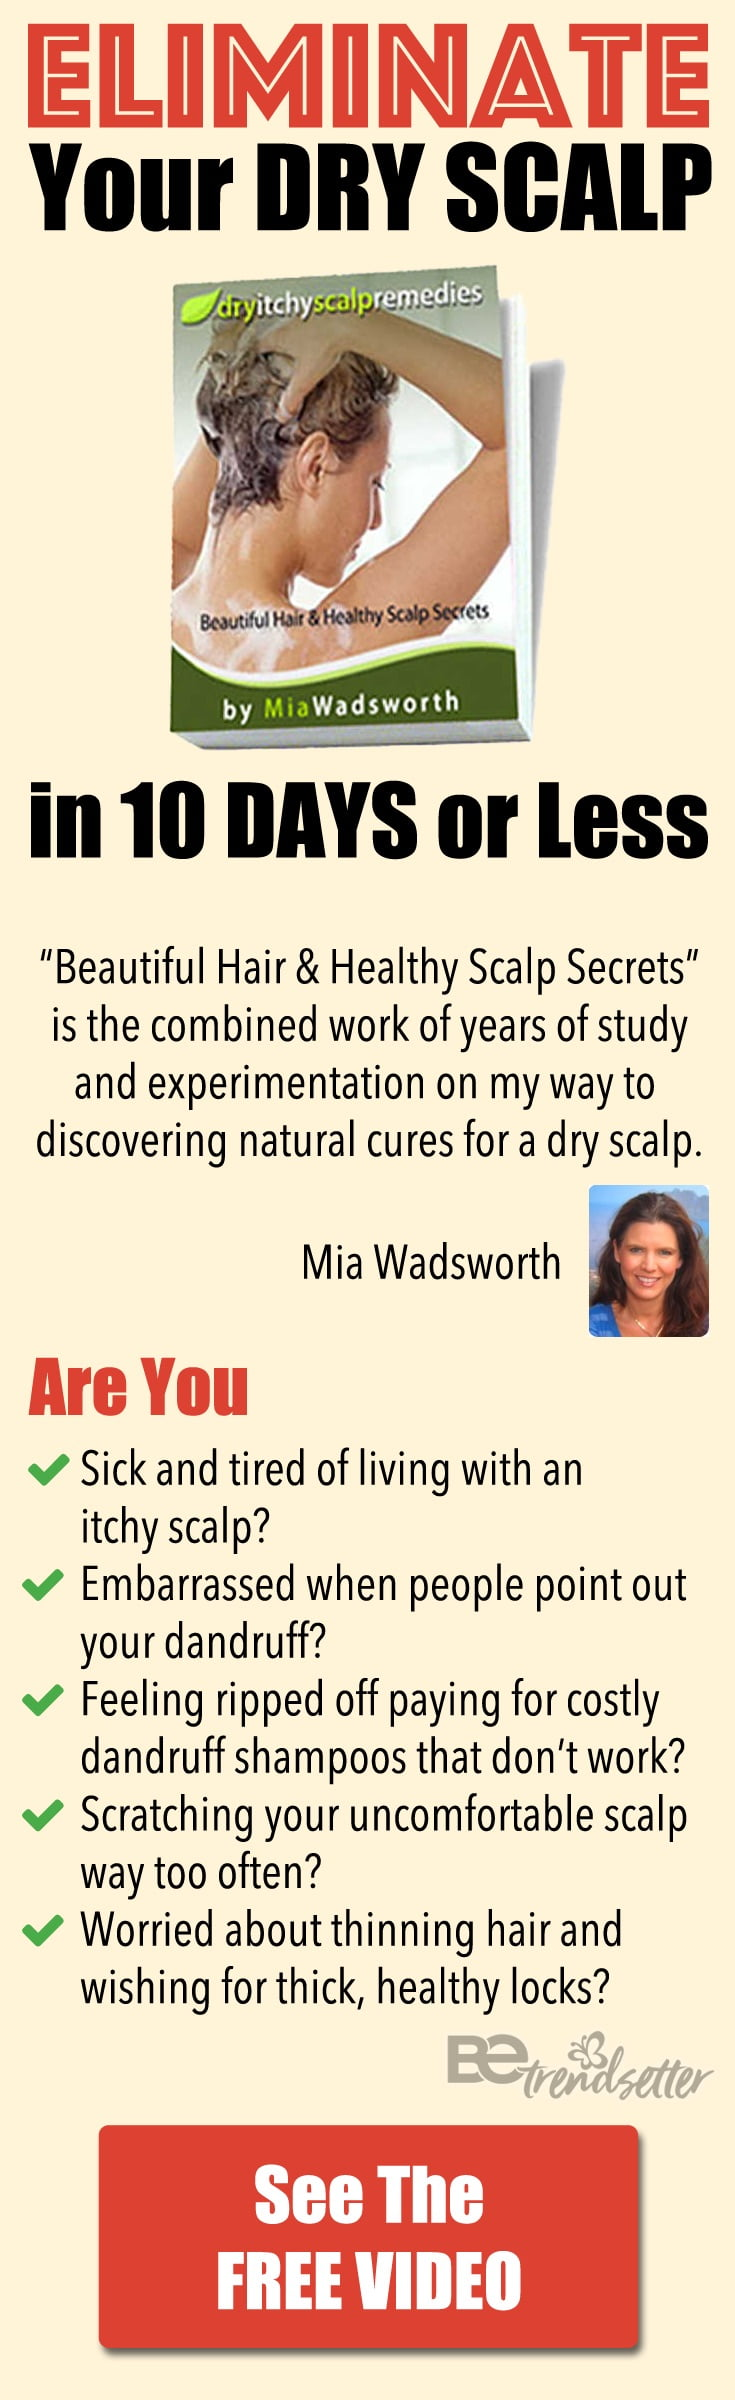 Eliminate your dry itchy scalp